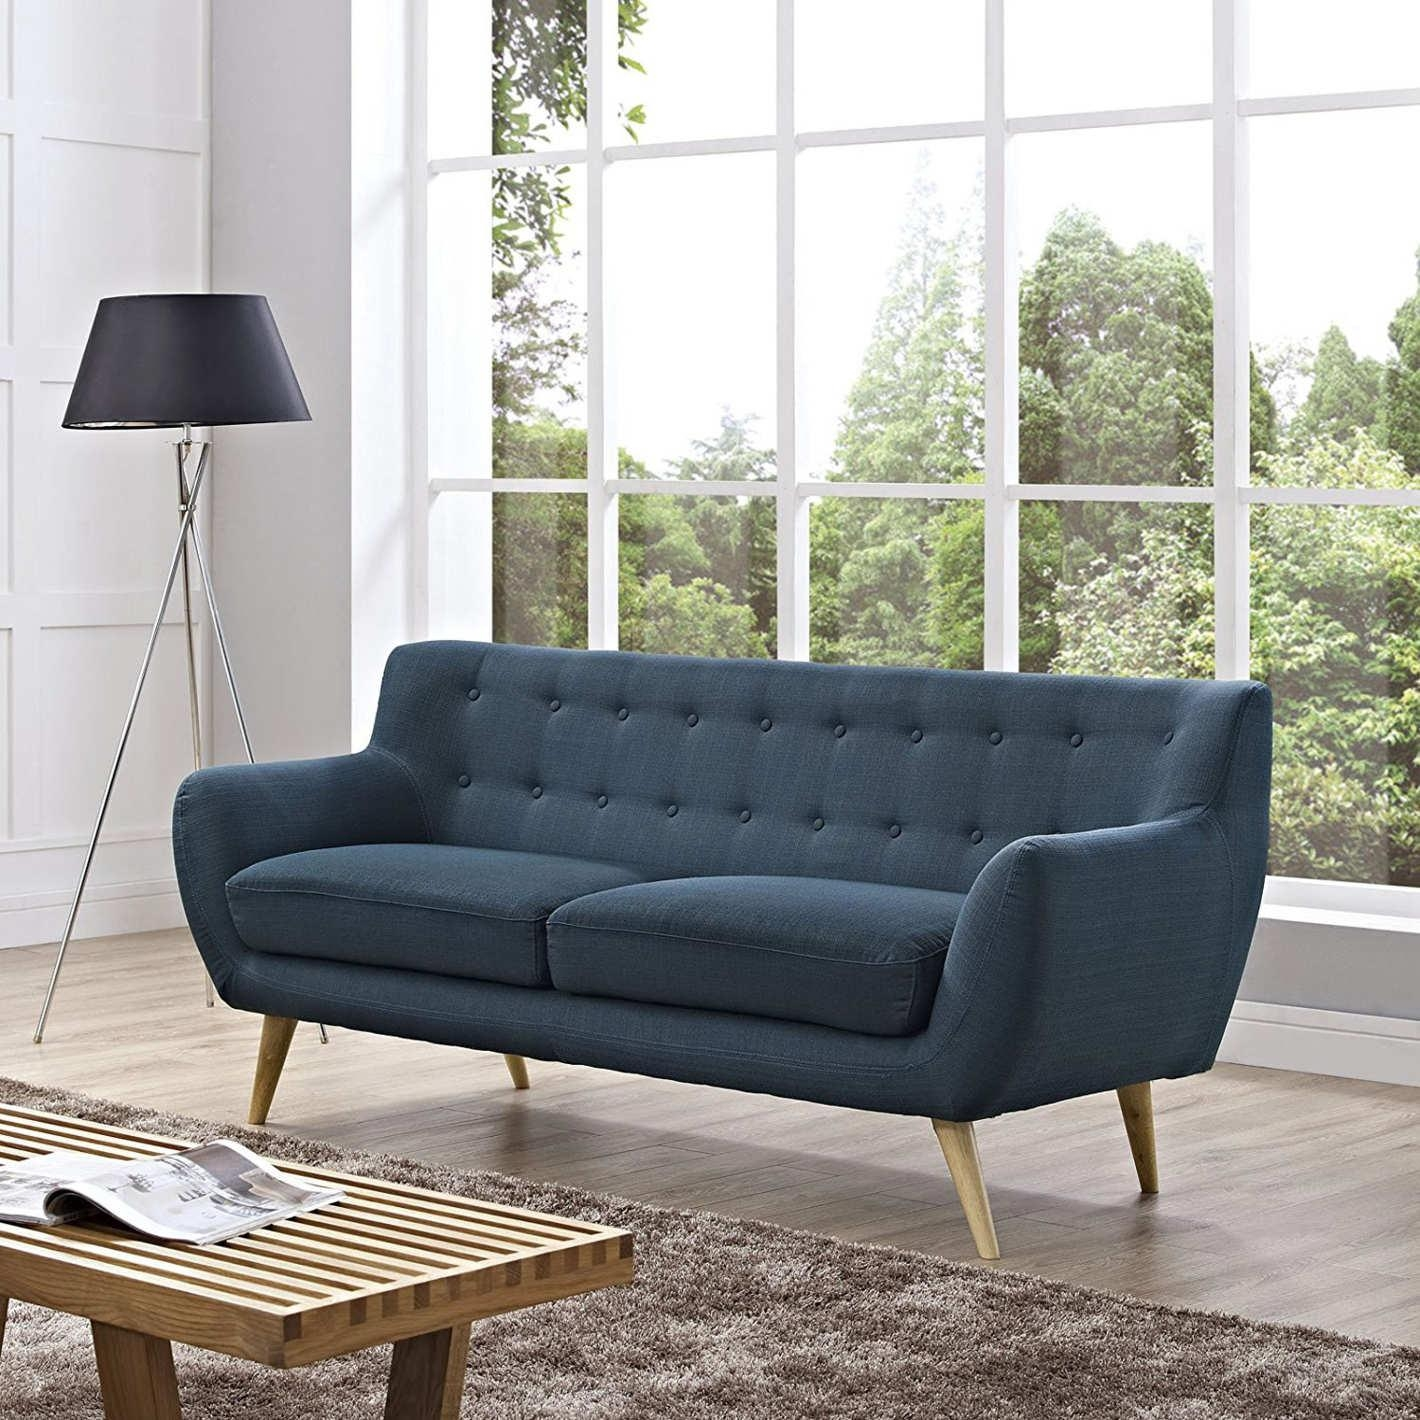 The Best Sofas Under $500 (Plus A Few Under $1000) Throughout Mod Sofas (View 4 of 20)